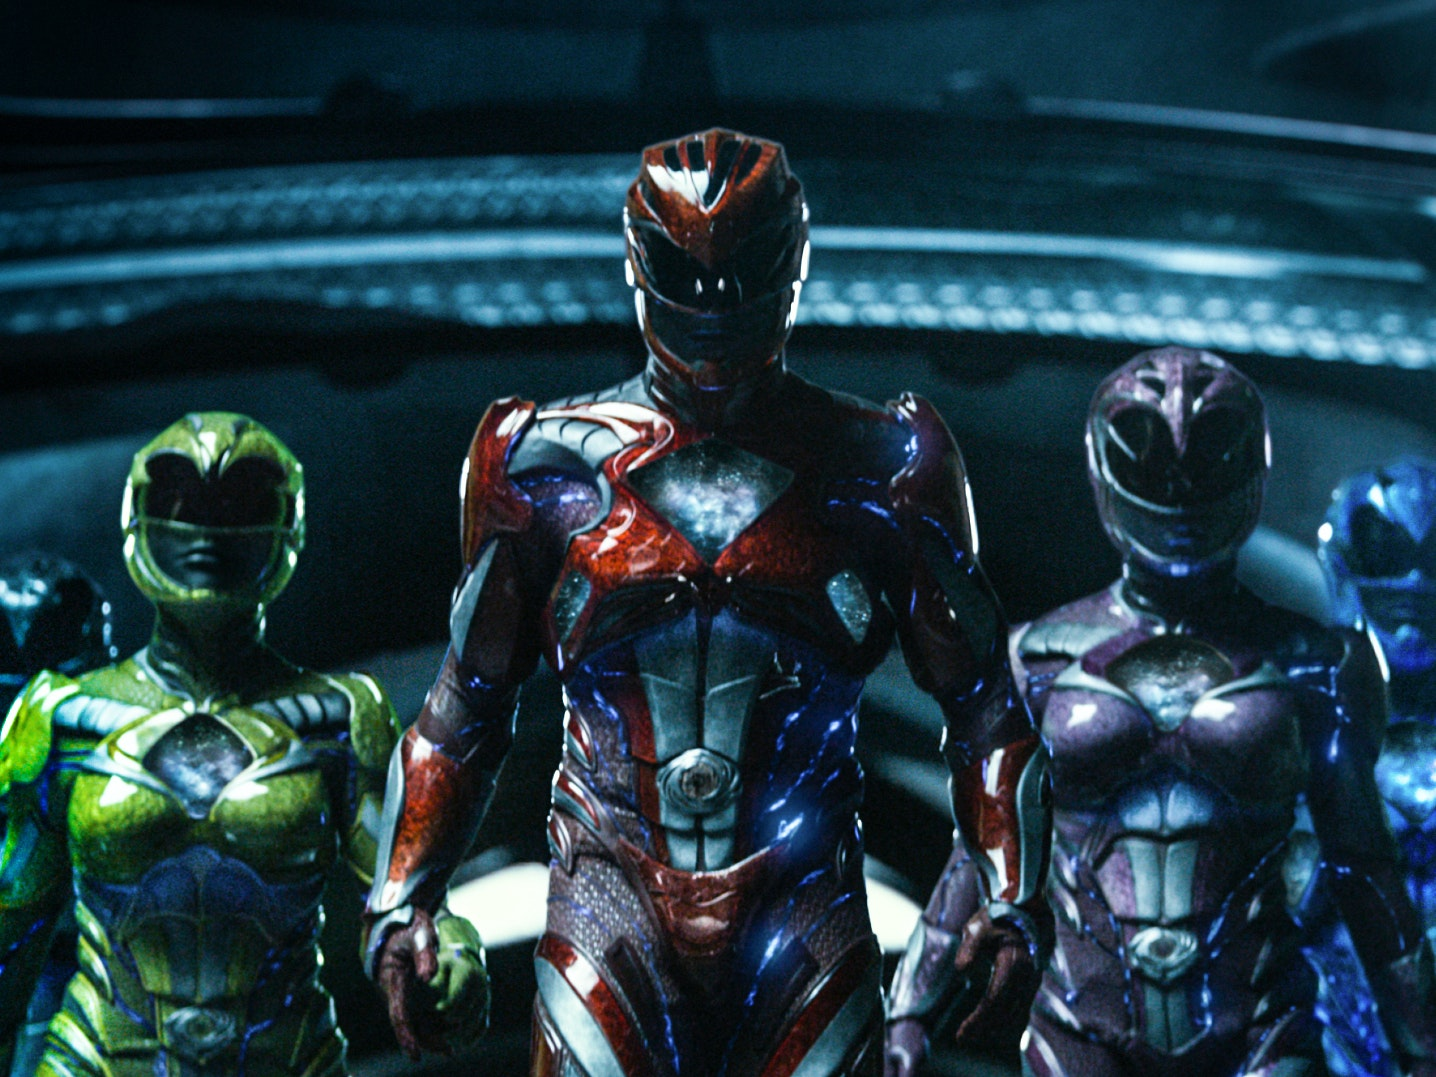 'Power Rangers' Reboot's Metallic Costumes Go Way Back on TV